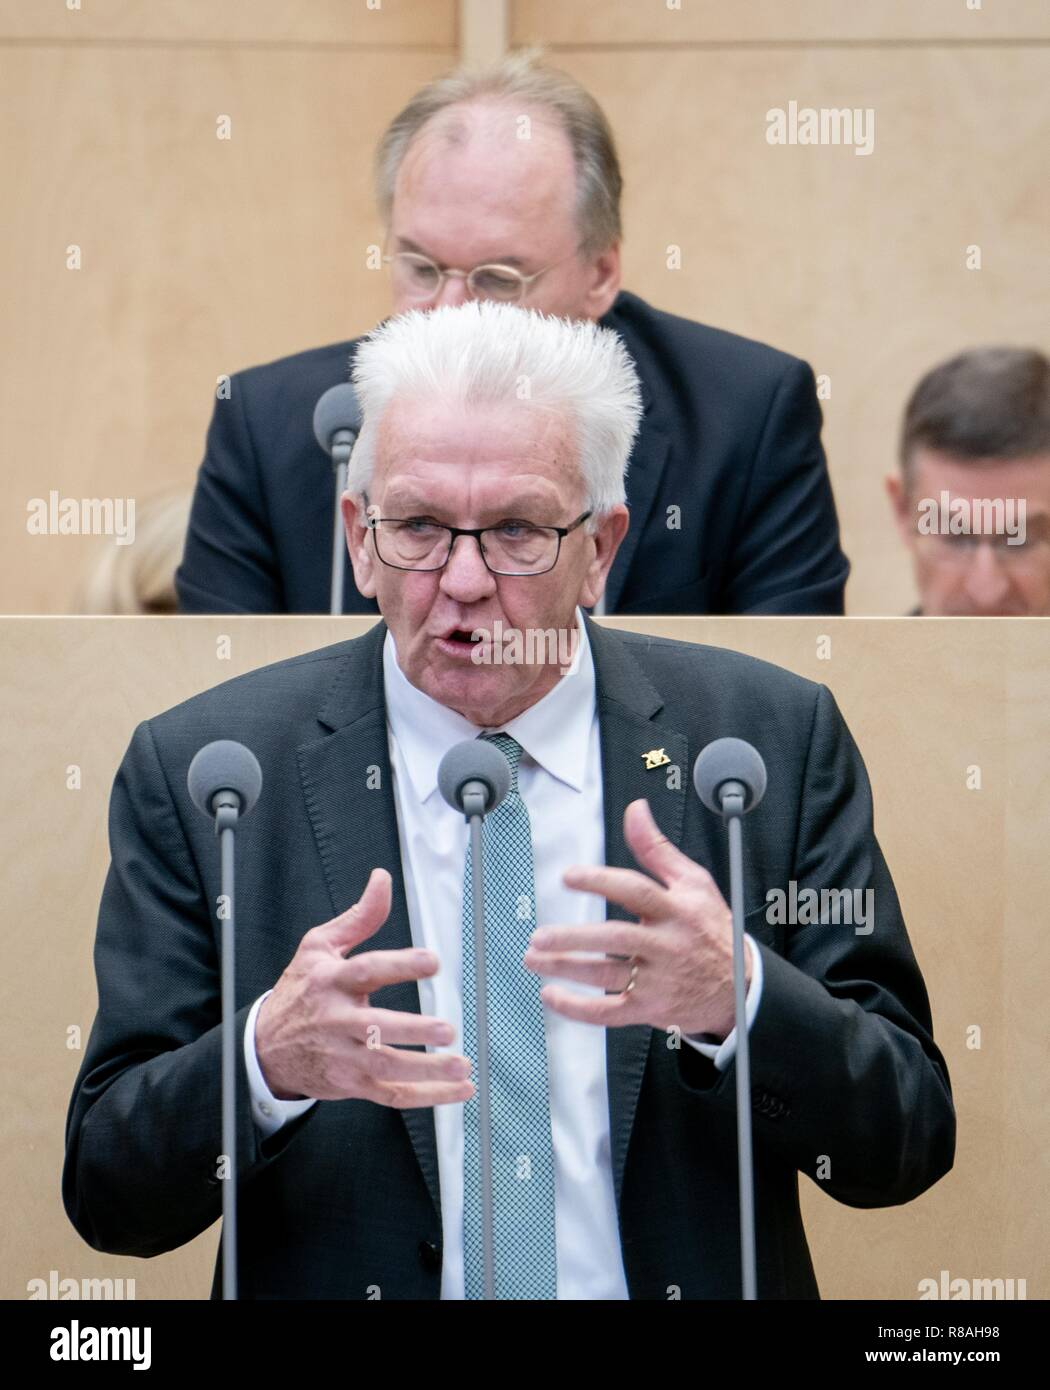 Berlin, Germany. 14th Dec, 2018. Winfried Kretschmann (Bündnis 90/Die Grünen), Minister President of Baden-Württemberg, speaks at the meeting of the Bundesrat. In the last session of the year, the regional chamber finally deals with several laws of the grand coalition, including tightening the rent brake, more further training, higher nursing care contributions in 2019, postponement of the ban on anaesthetised piglet castration. Credit: Kay Nietfeld/dpa/Alamy Live News - Stock Image